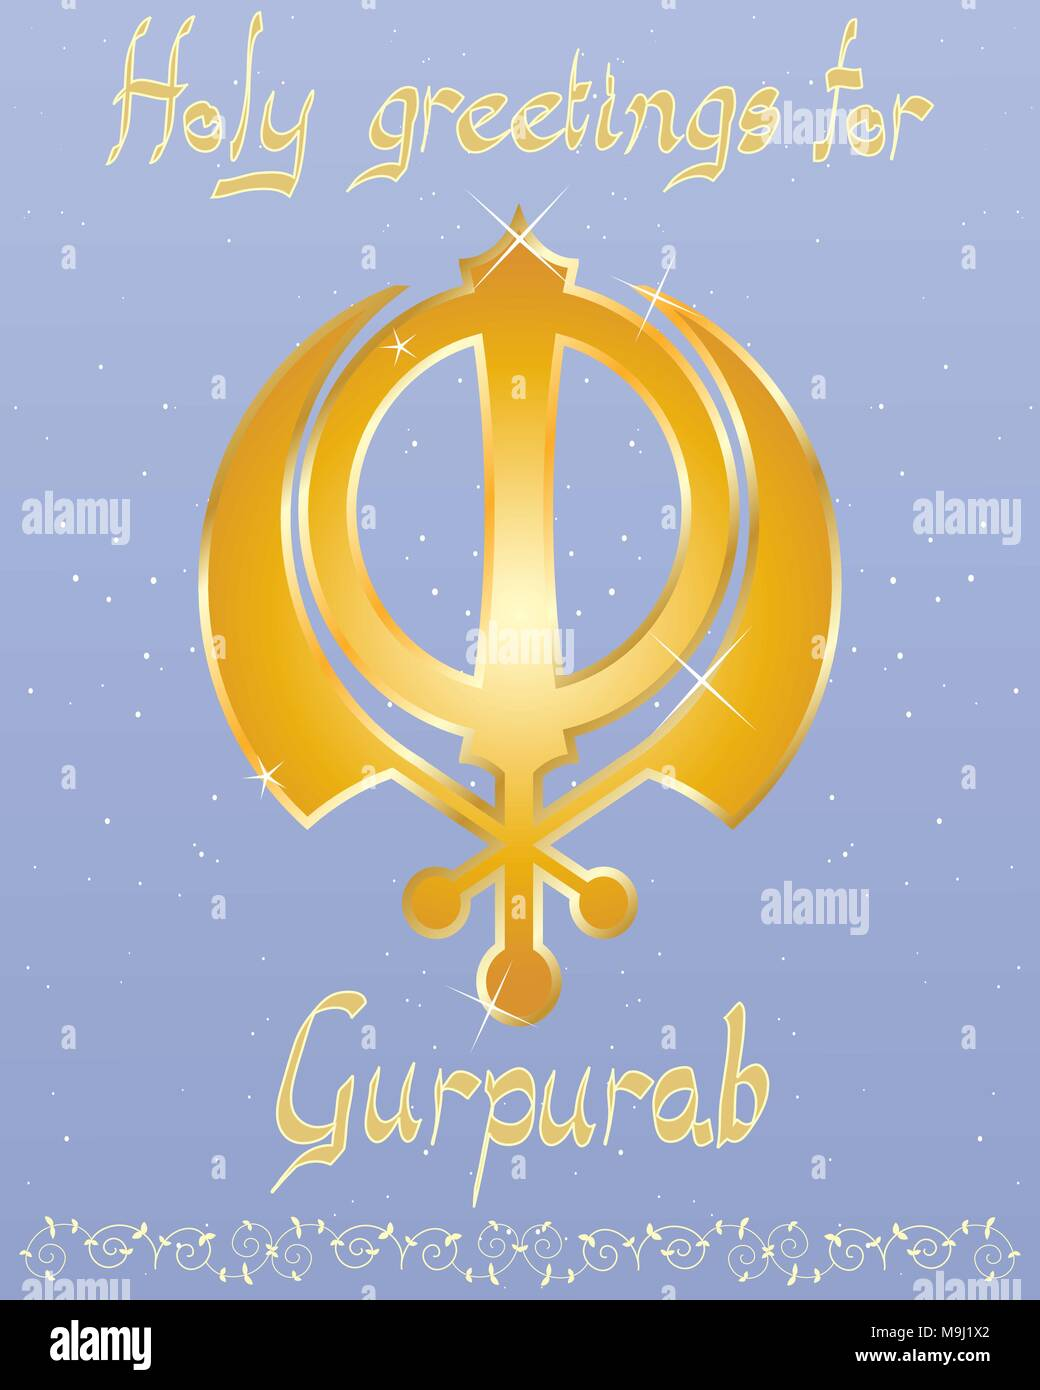 Illustration Sikh Greeting Card Symbol Stock Photos Illustration